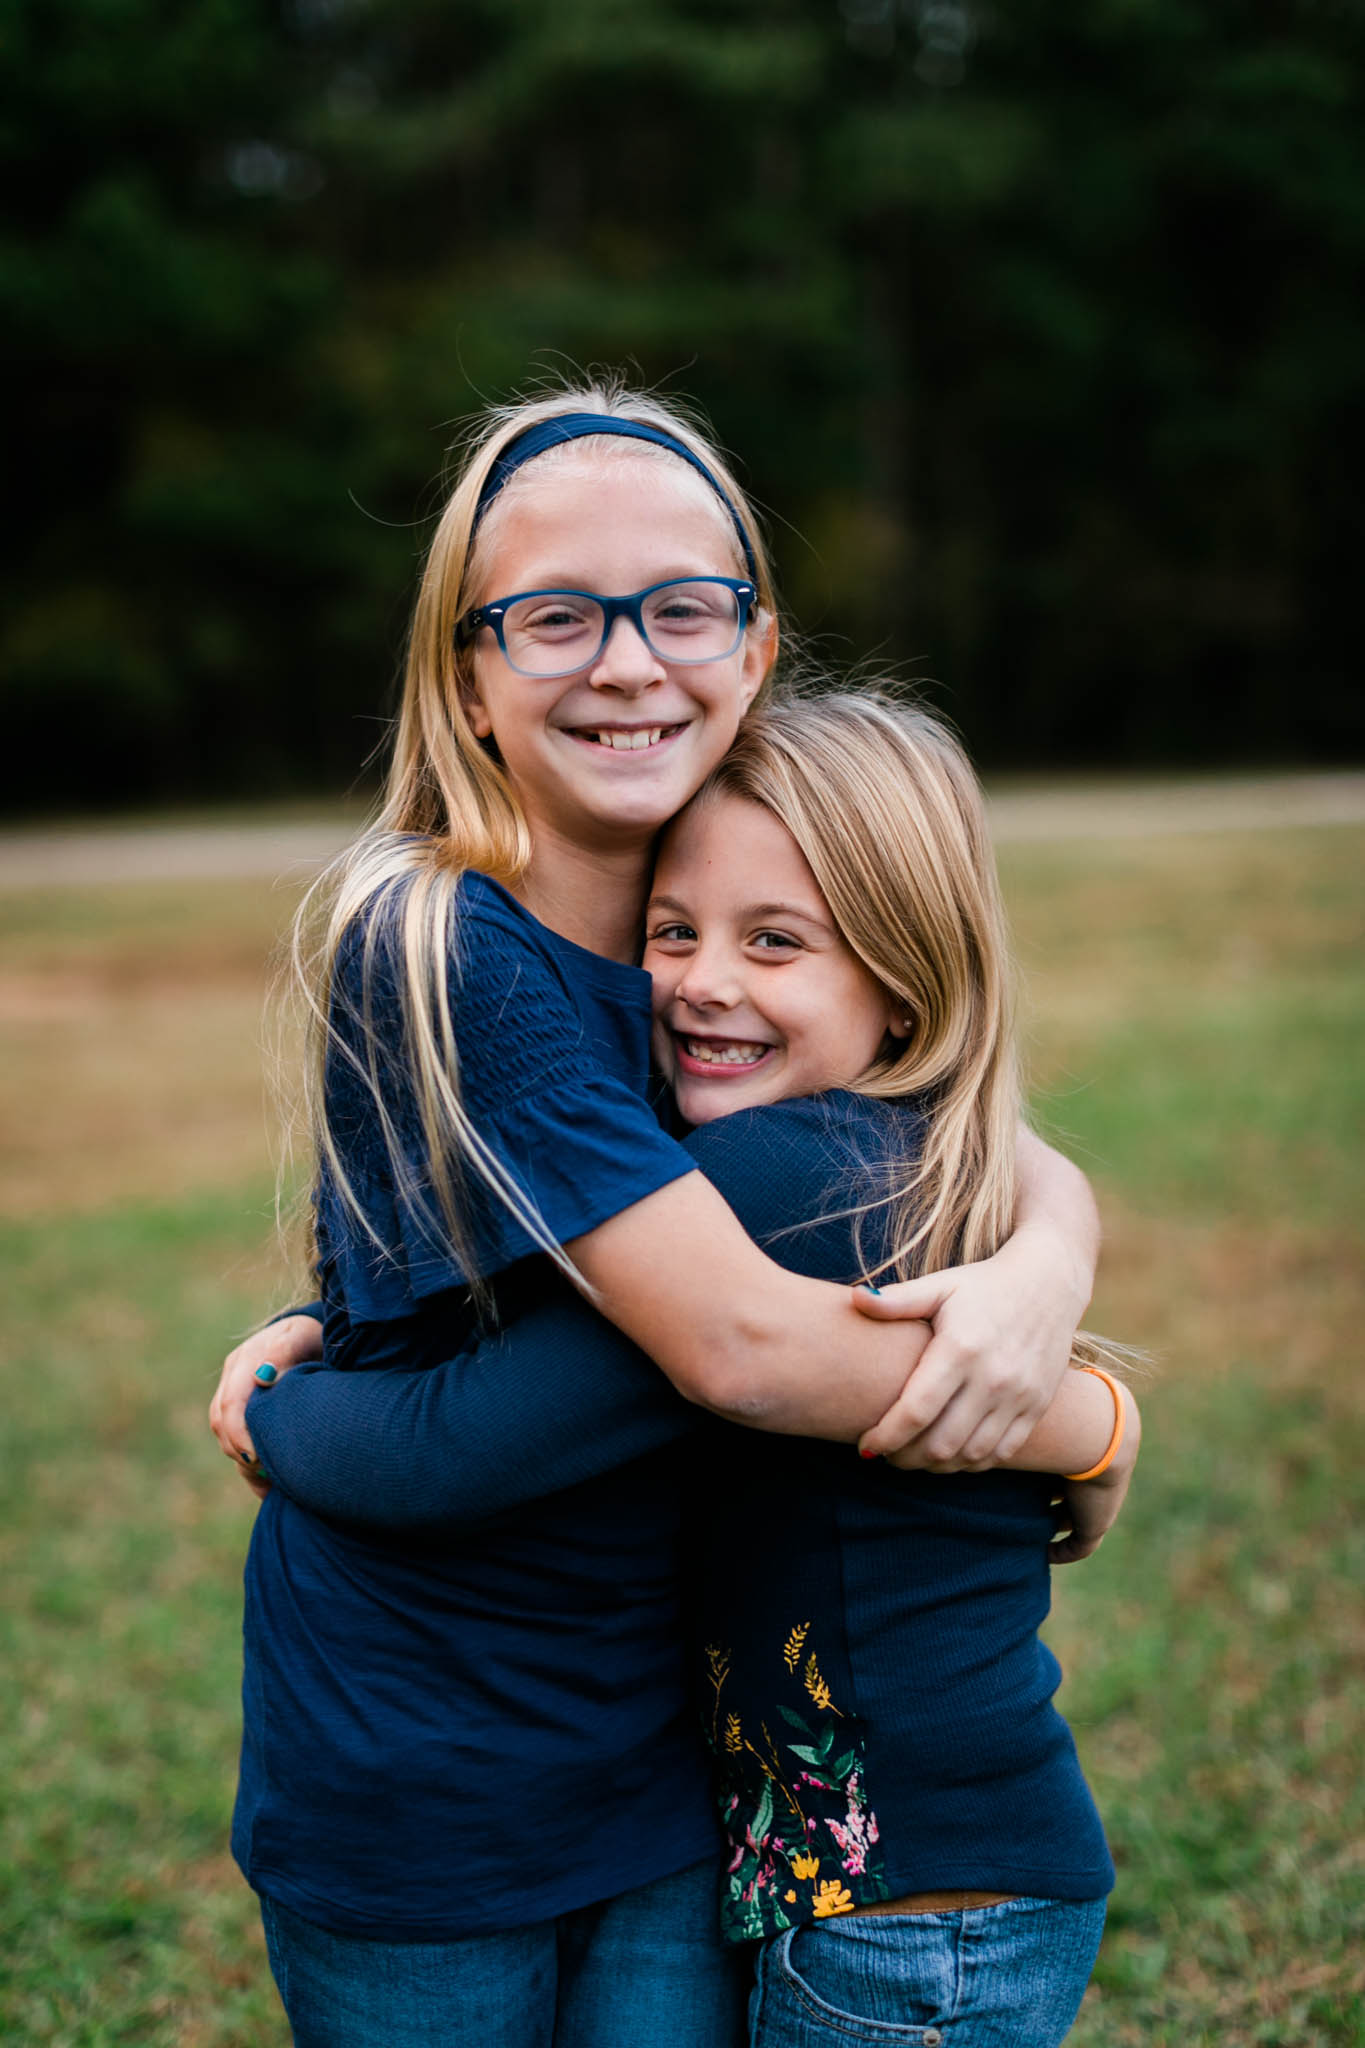 Sisters hugging each other at Umstead Park | Raleigh Family Photographer | By G. Lin Photography